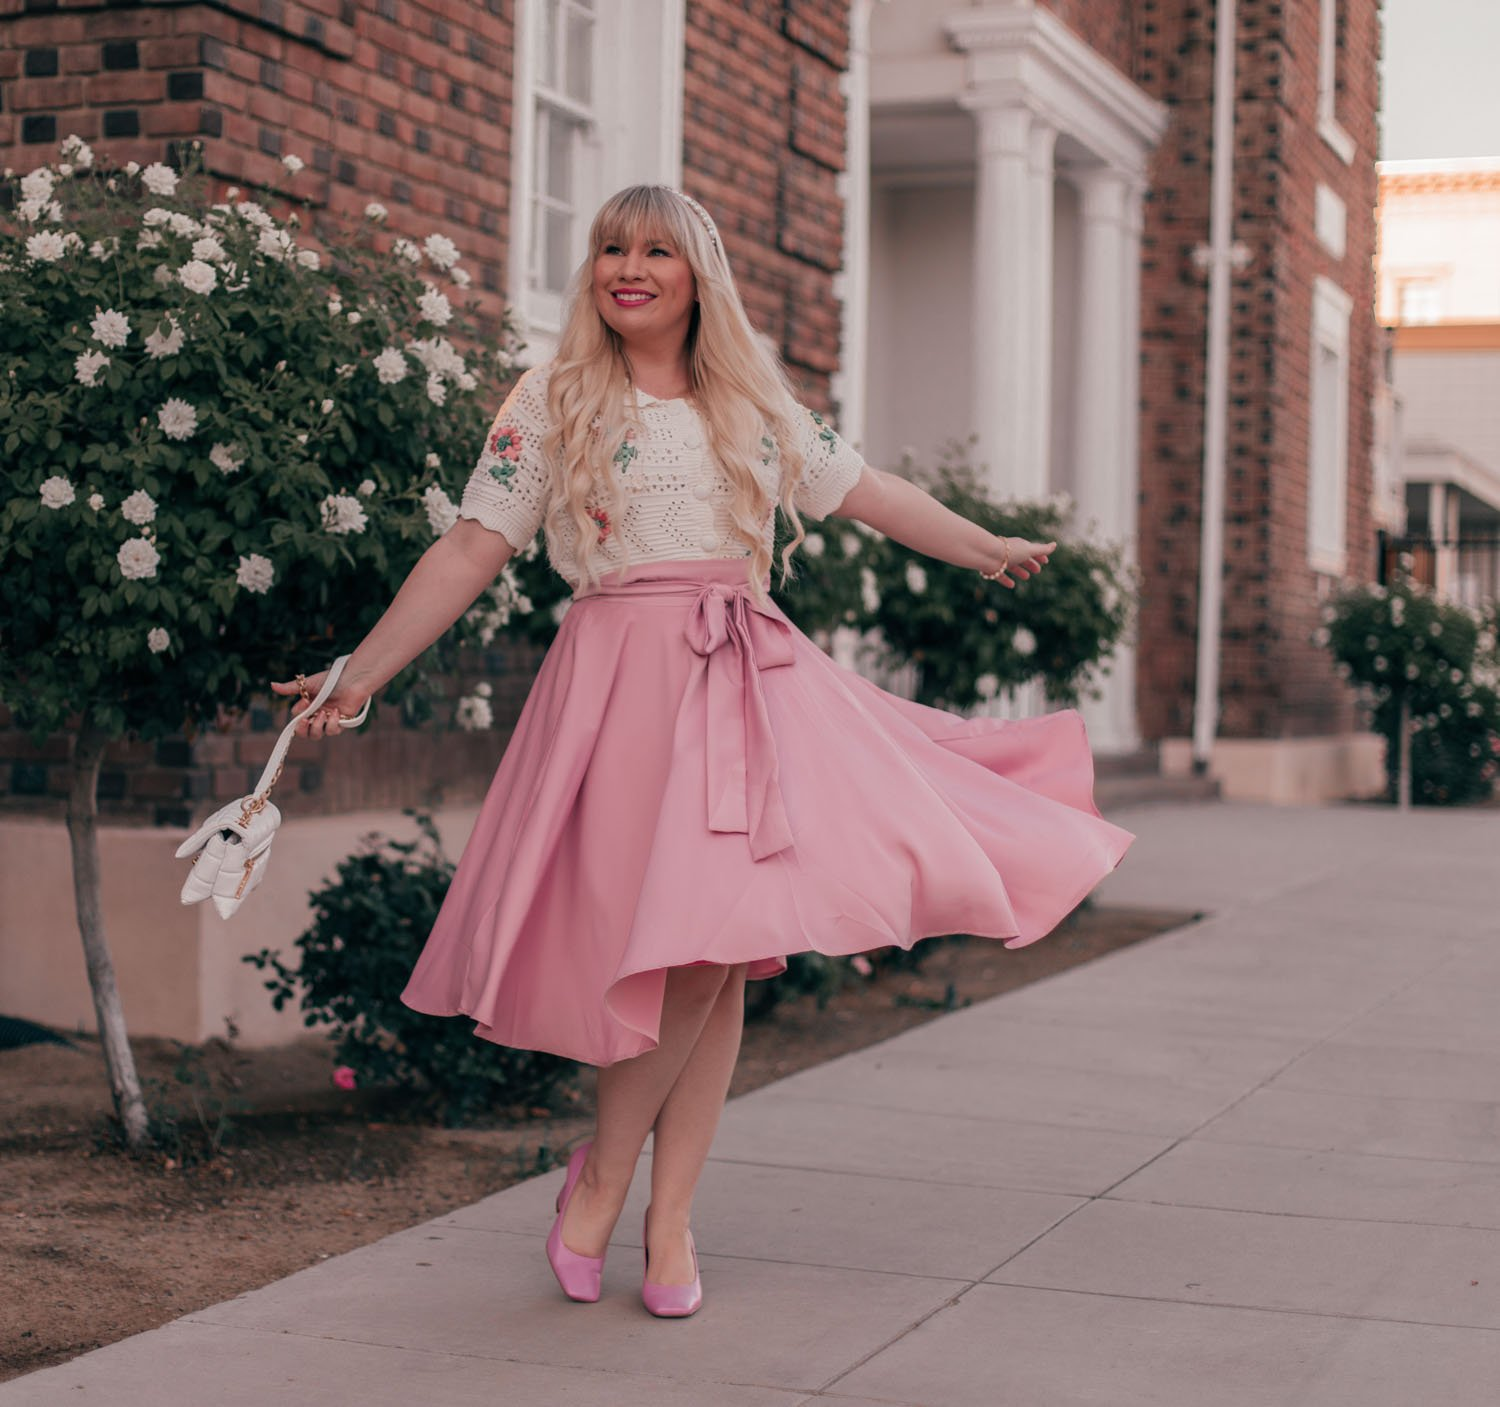 Feminine fashion blogger Elizabeth Hugen of Lizzie in lace shares How to Wear a Vintage Inspired Cardigan for Summer including a pink chicwish skirt